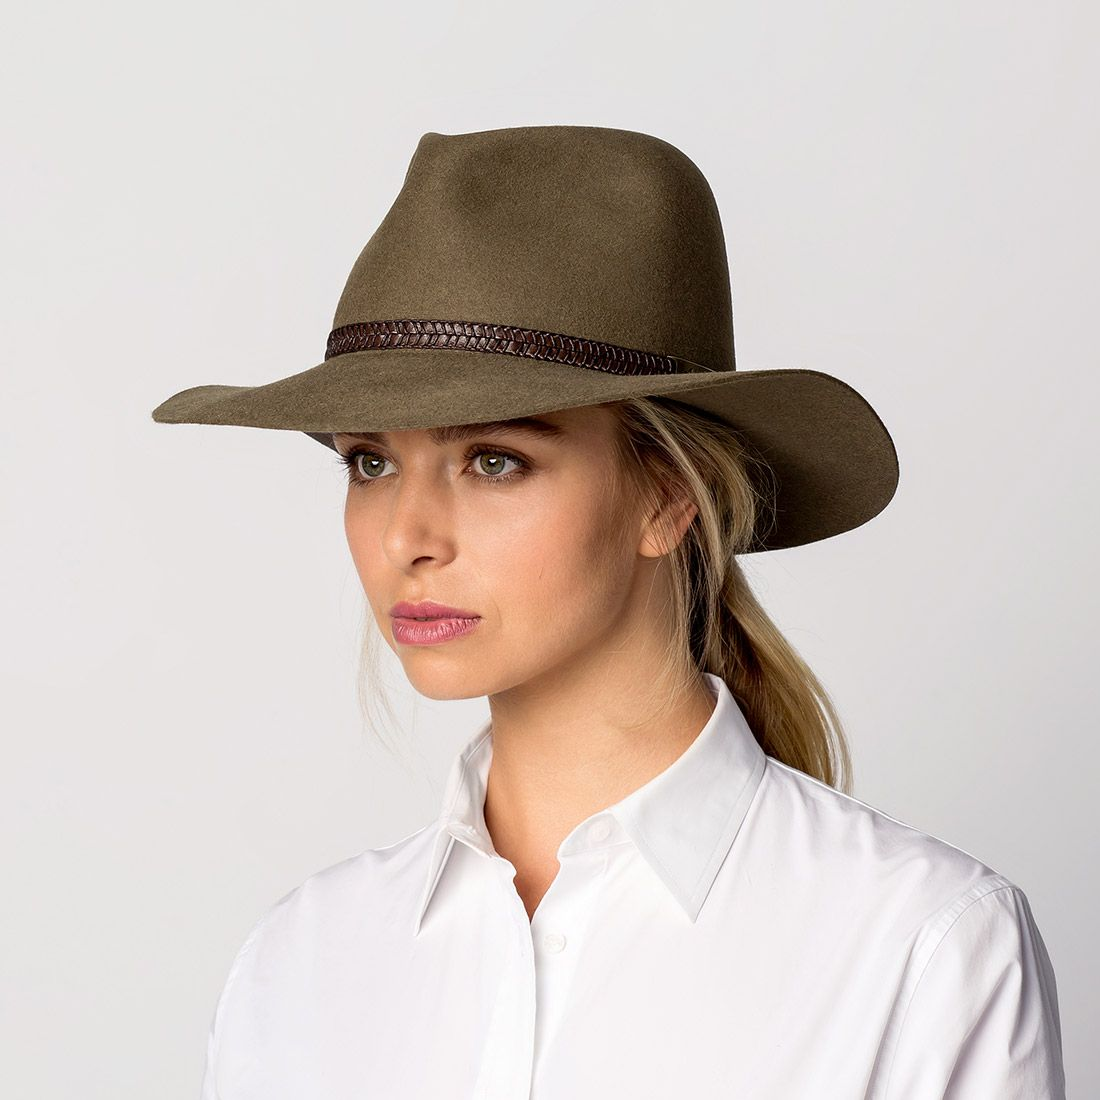 ede451cebfb akubra avalon - Google Search Womens Western Hats